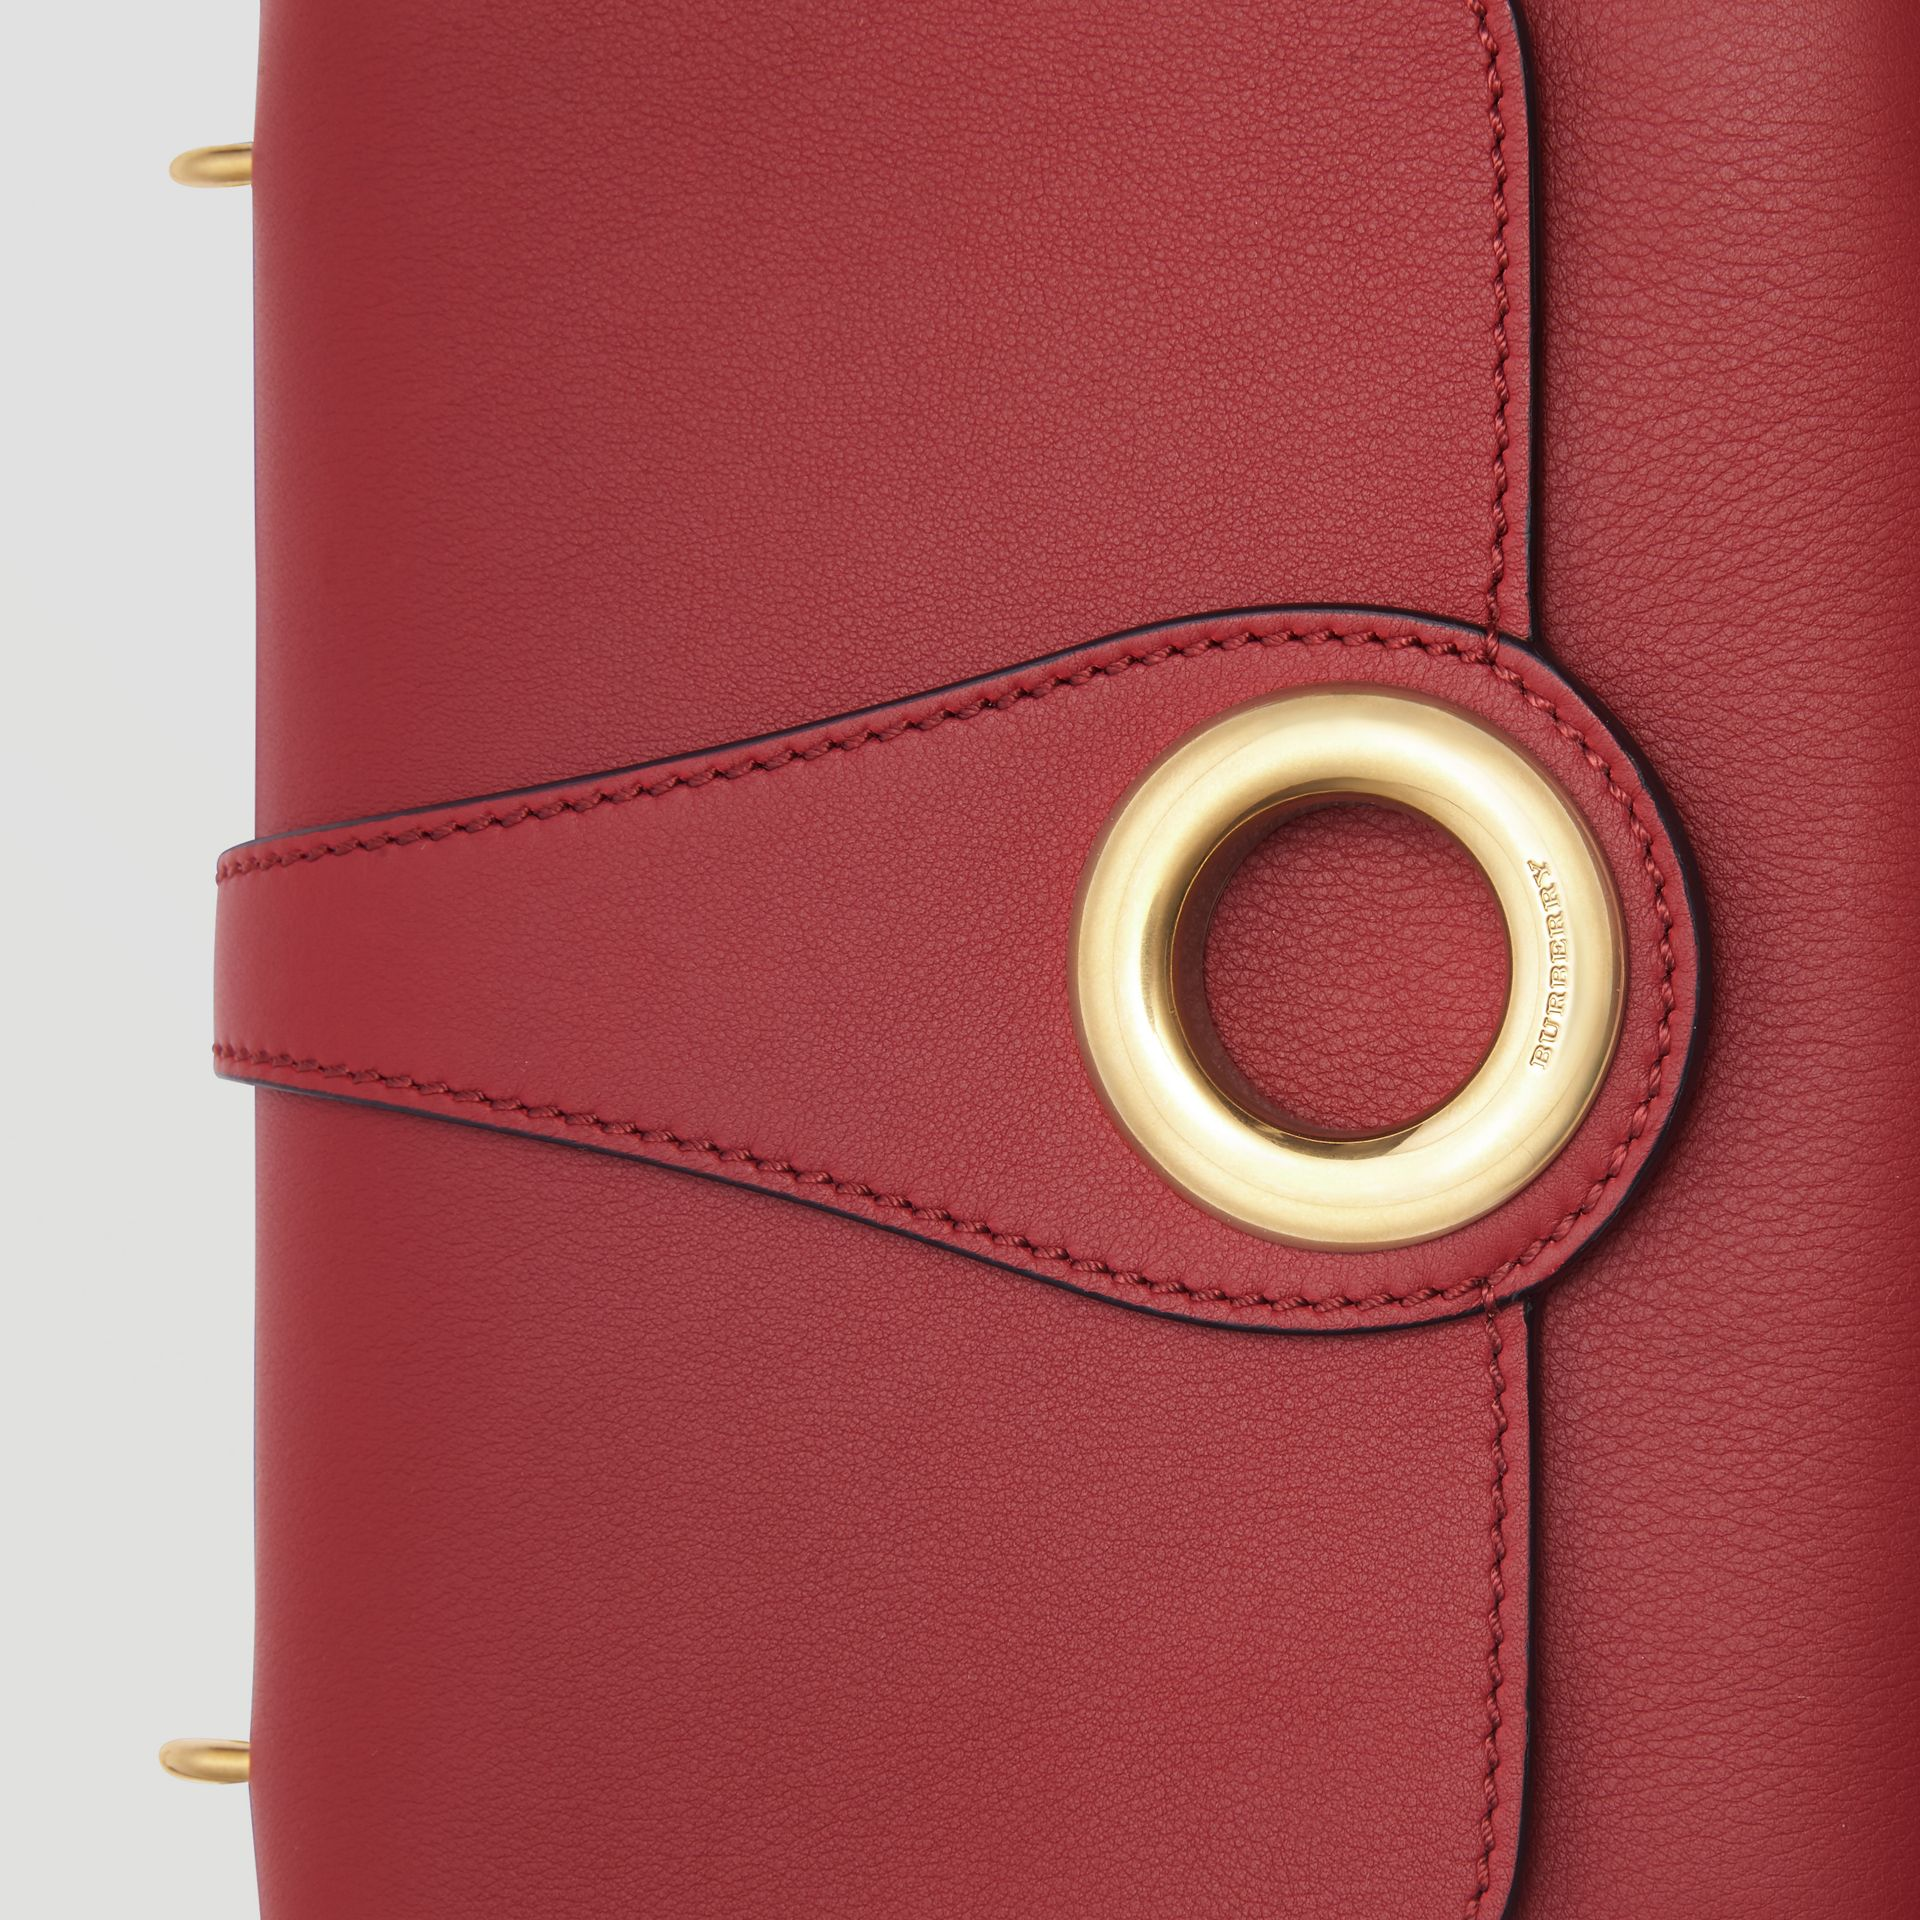 The Leather Grommet Detail Crossbody Bag in Crimson - Women | Burberry - gallery image 1